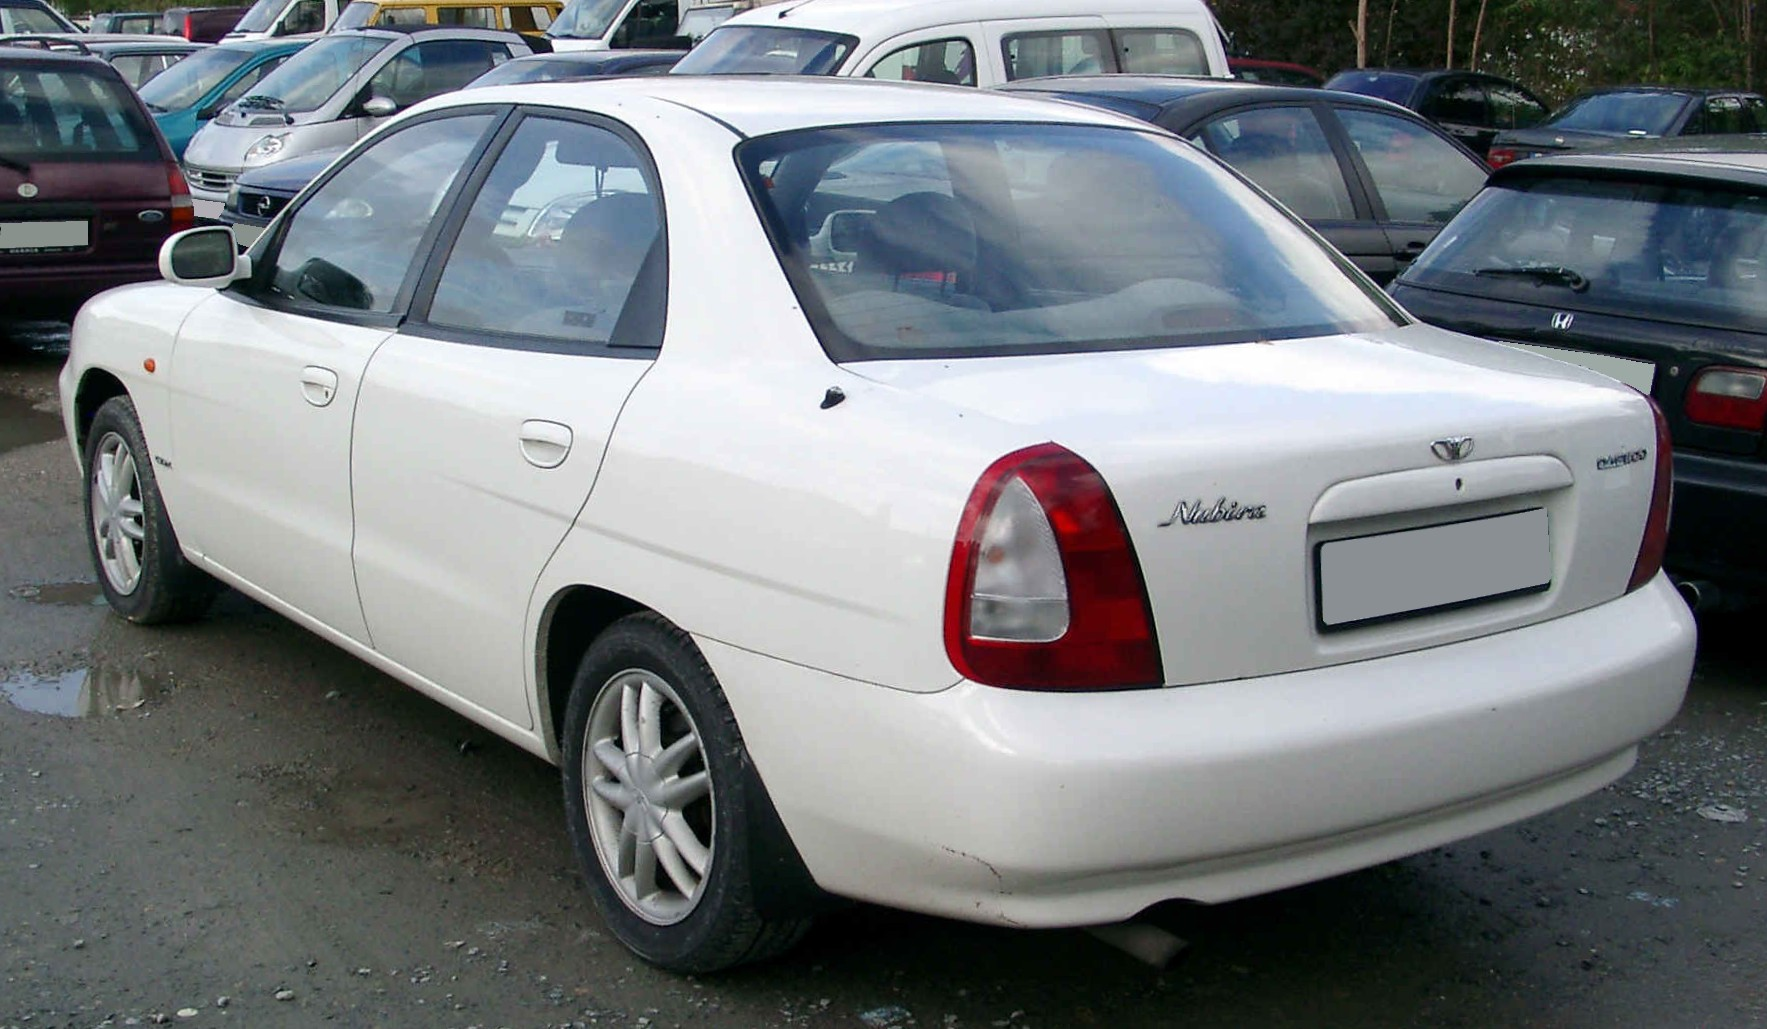 File Daewoo Nubira rear 20081007 moreover Daewoo Lanos Hatchback 3 Doors 1996 moreover Daewoo Espero Interior 1 likewise 1999 02 Daewoo Leganza in addition Sedan4d. on 2002 daewoo lanos